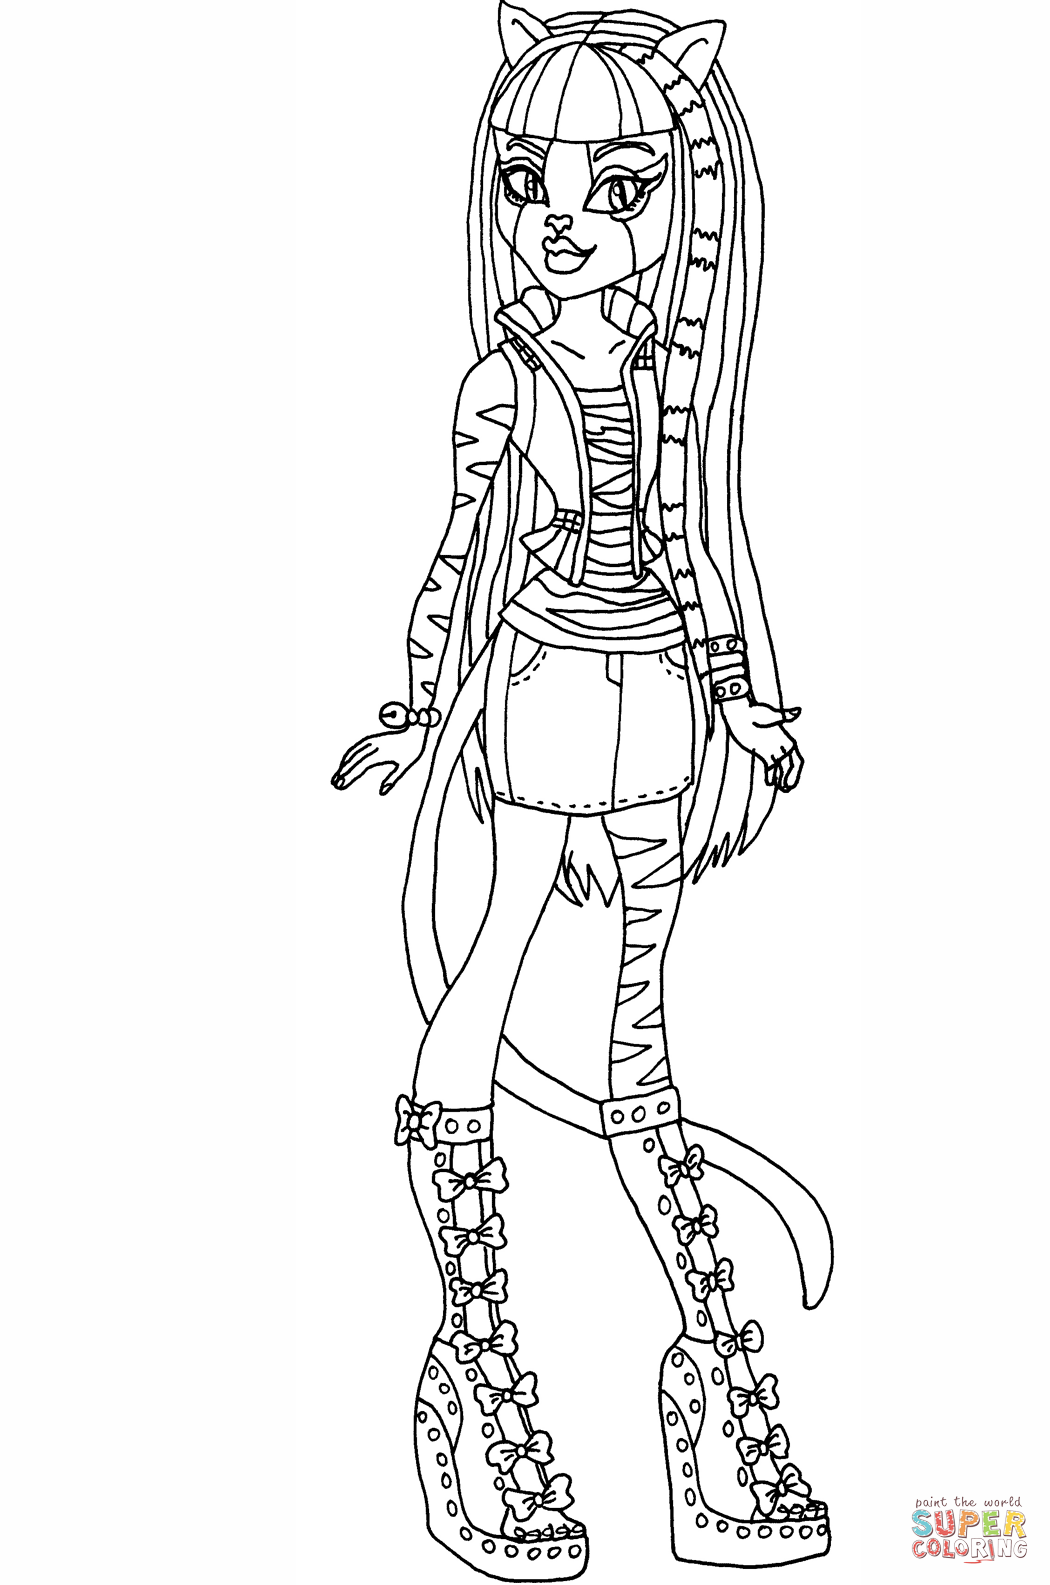 monster high black and white coloring pages cartoon meowlody coloring page free printable coloring pages high black white monster coloring pages and